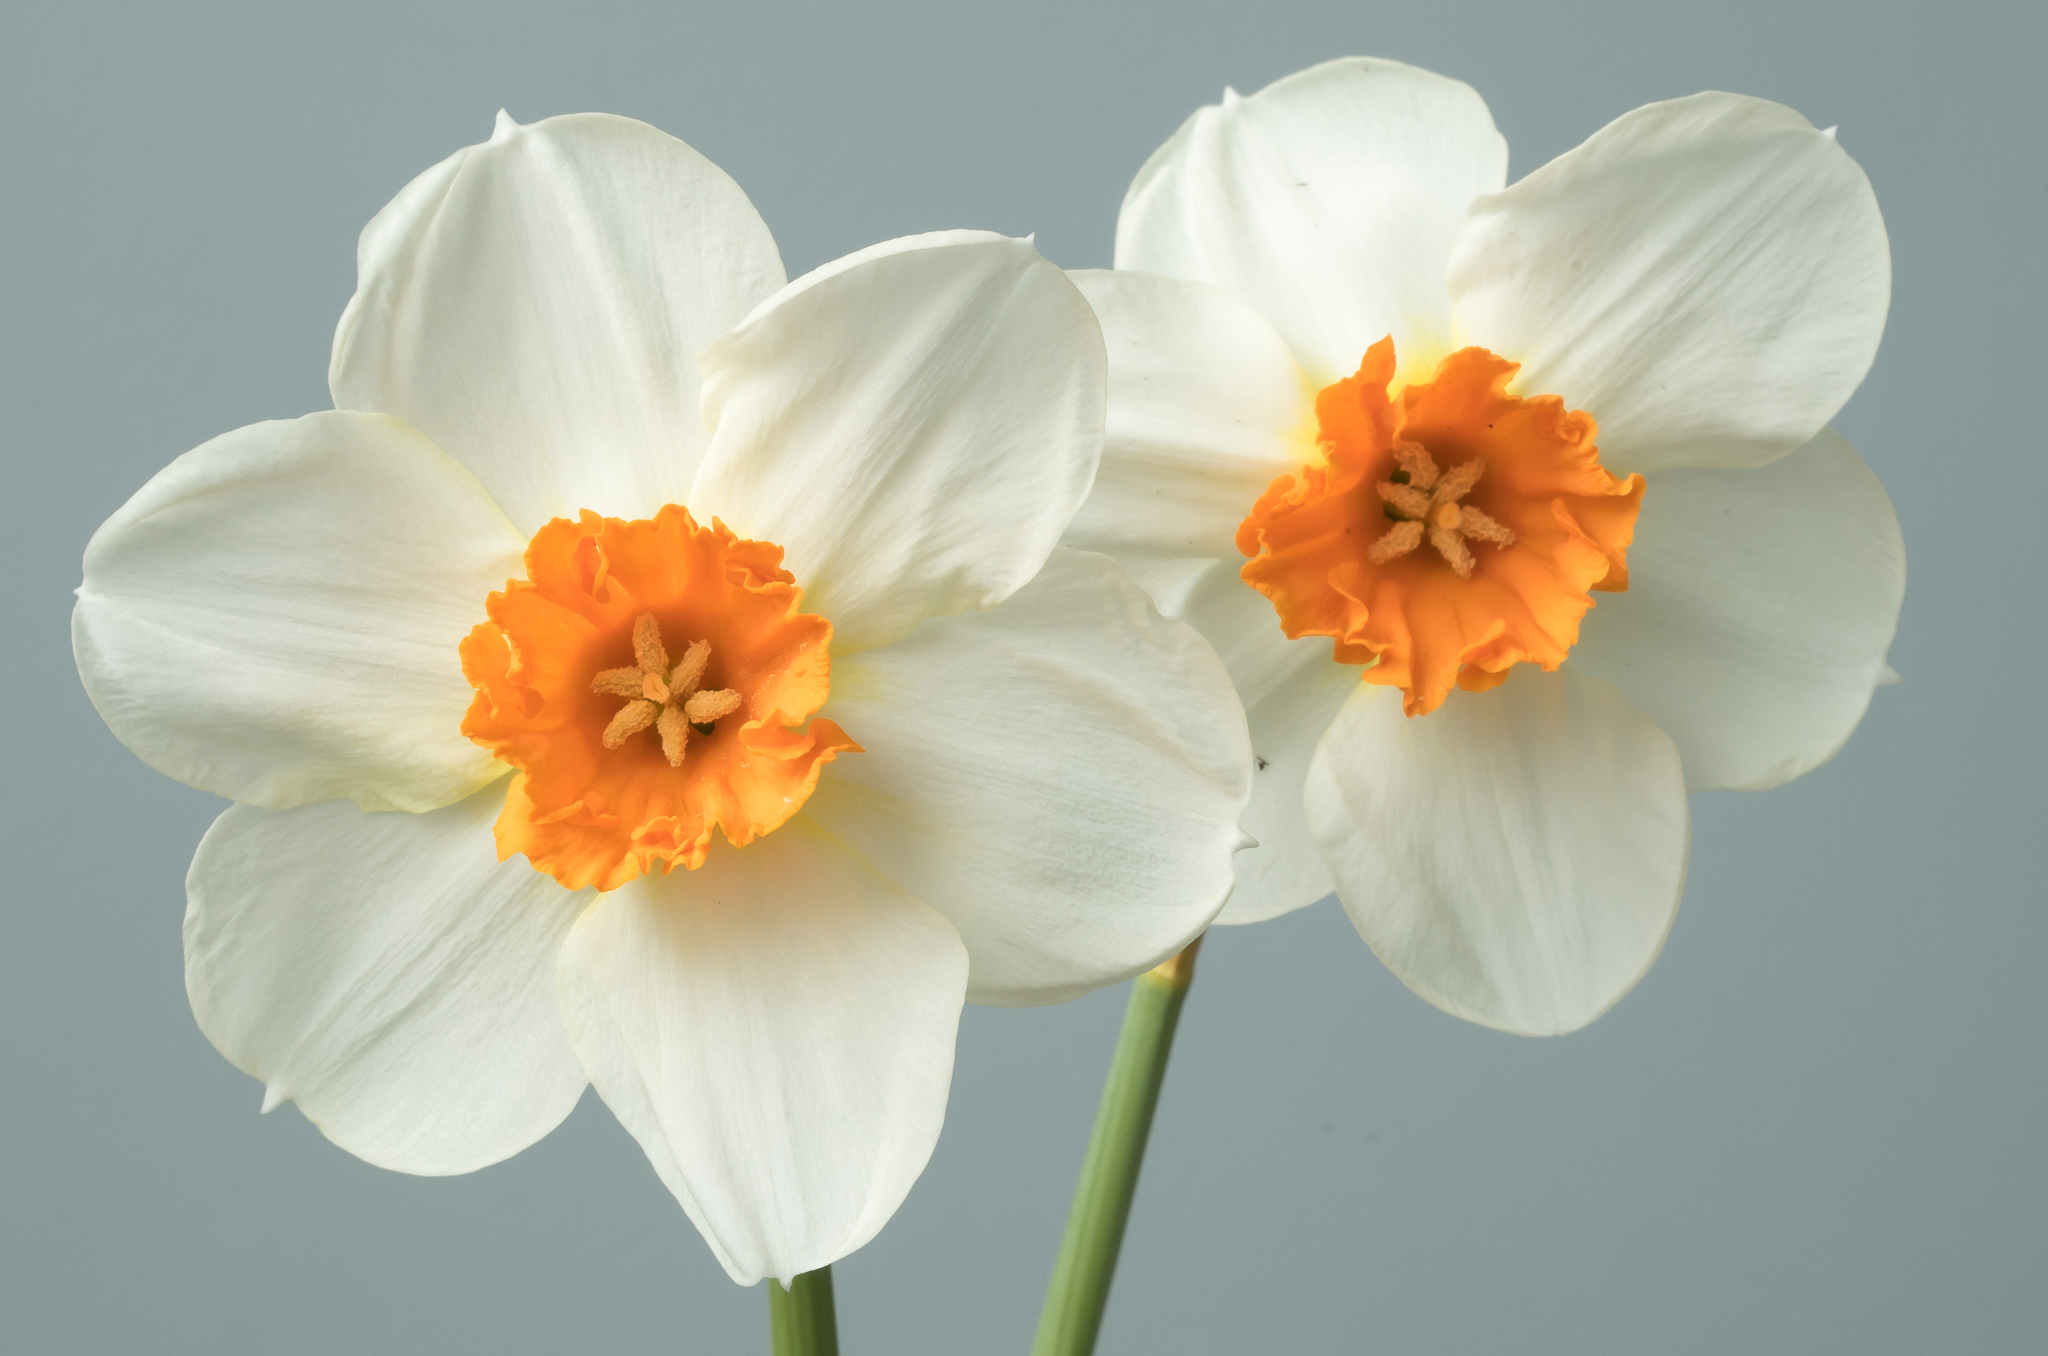 Daffodil Bulbs Barrett Browning